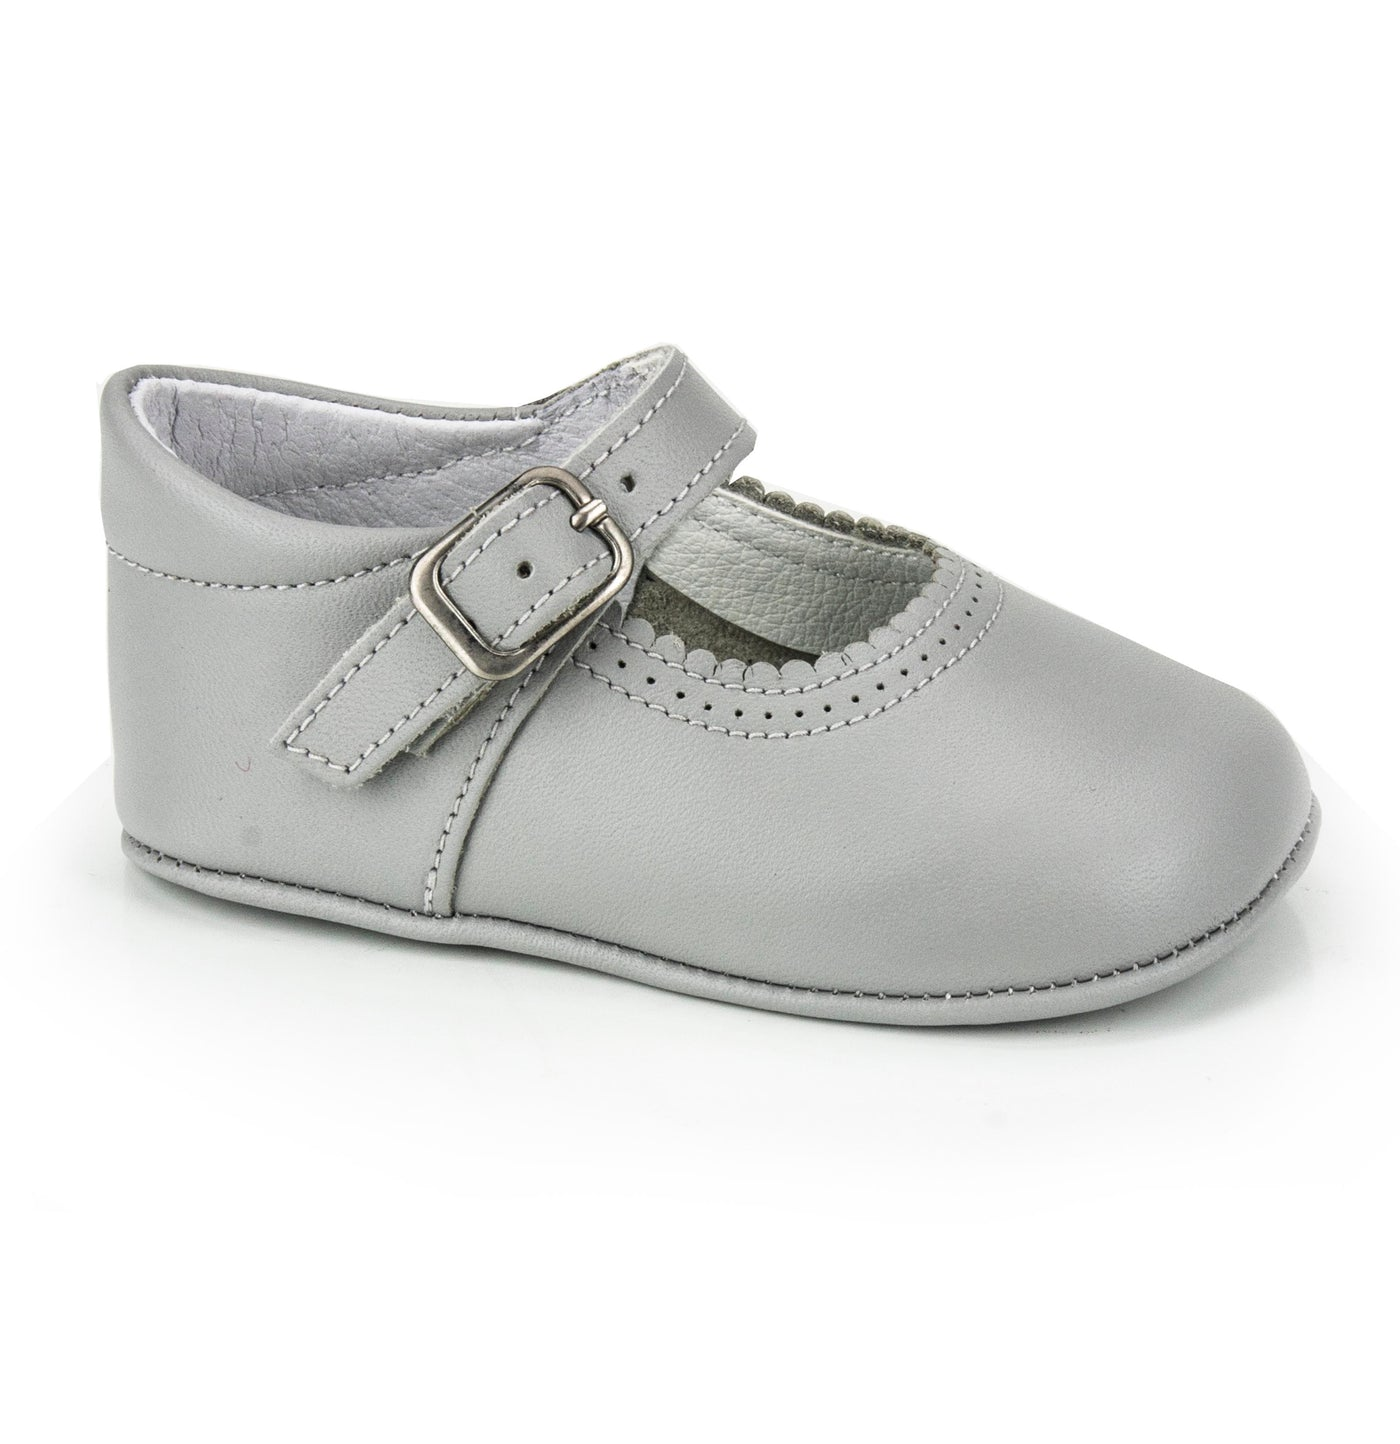 Patucos Soft Leather Mary Janes Grey Shoes for girls